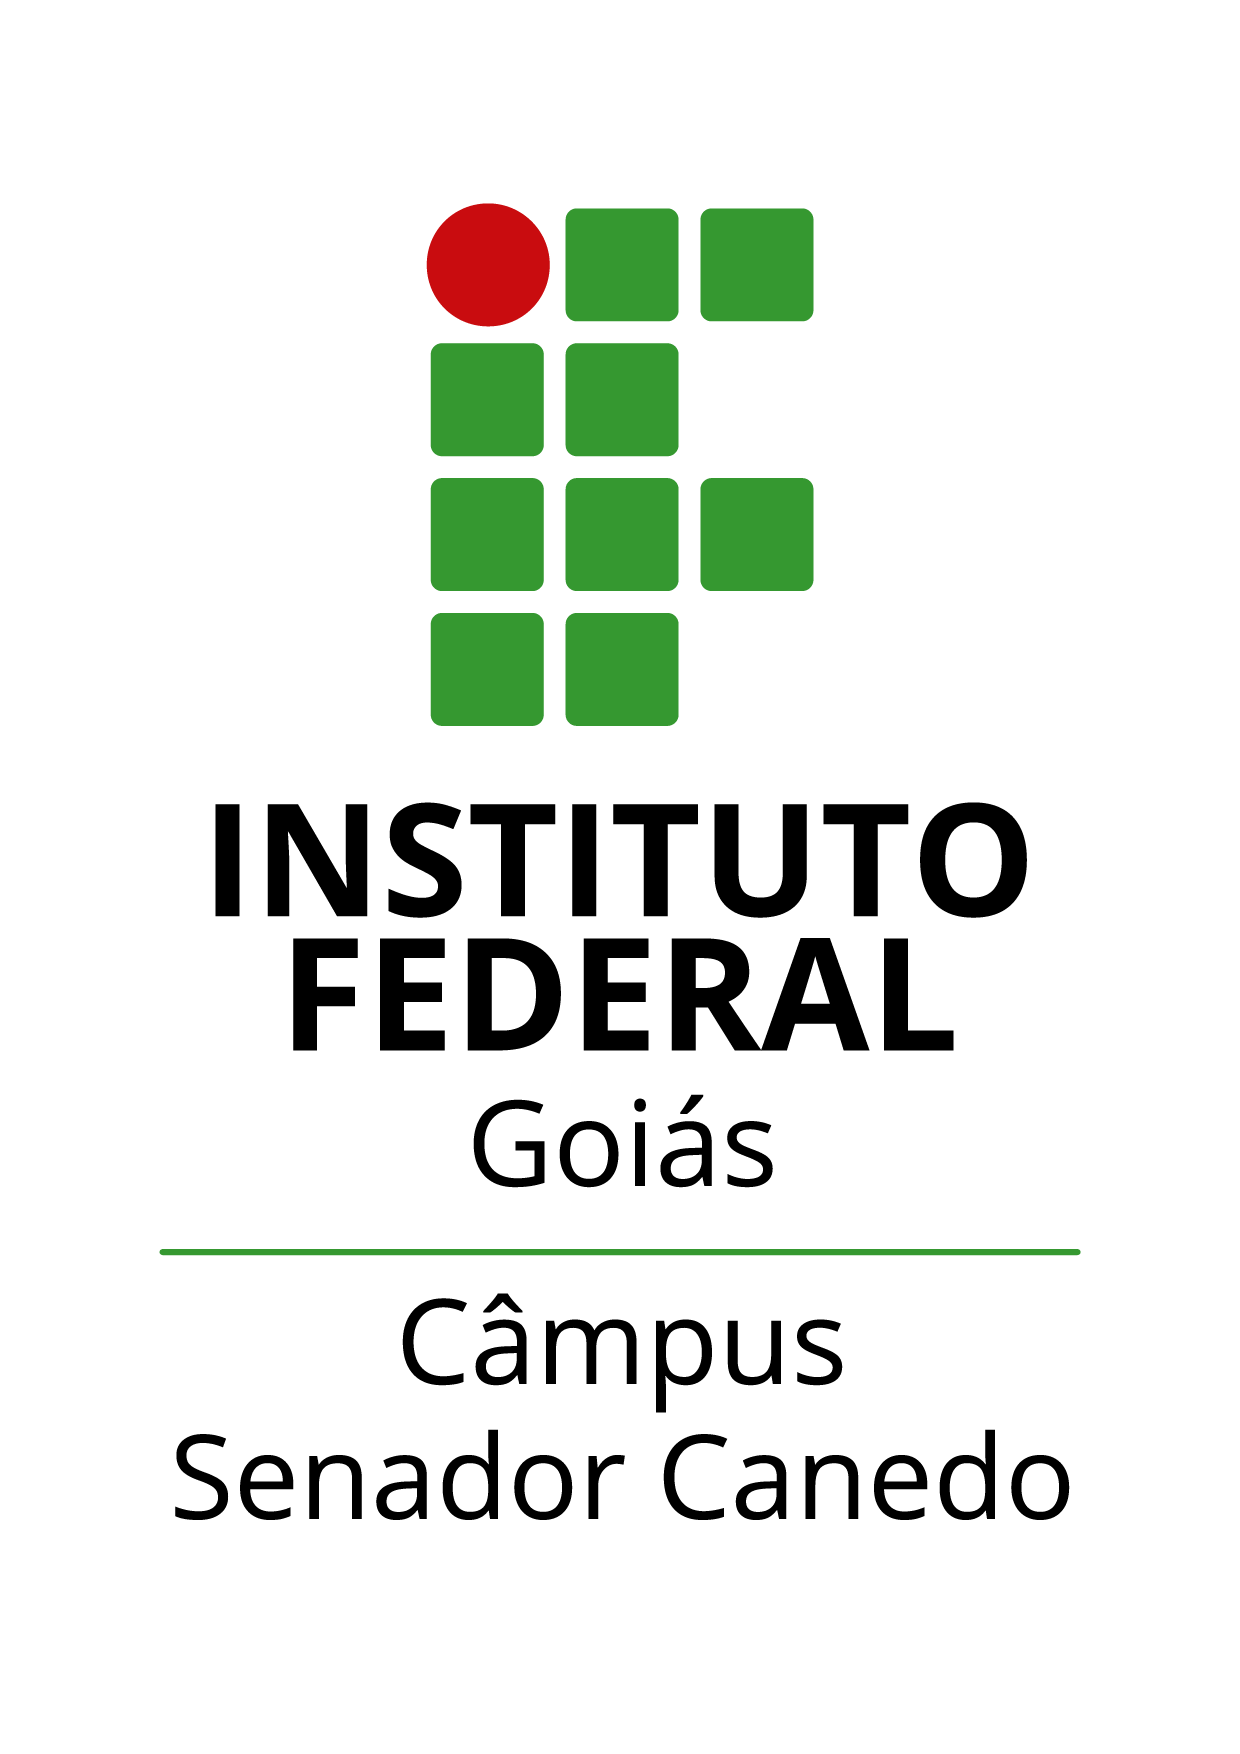 Logo do IFG - Câmpus Senador Canedo